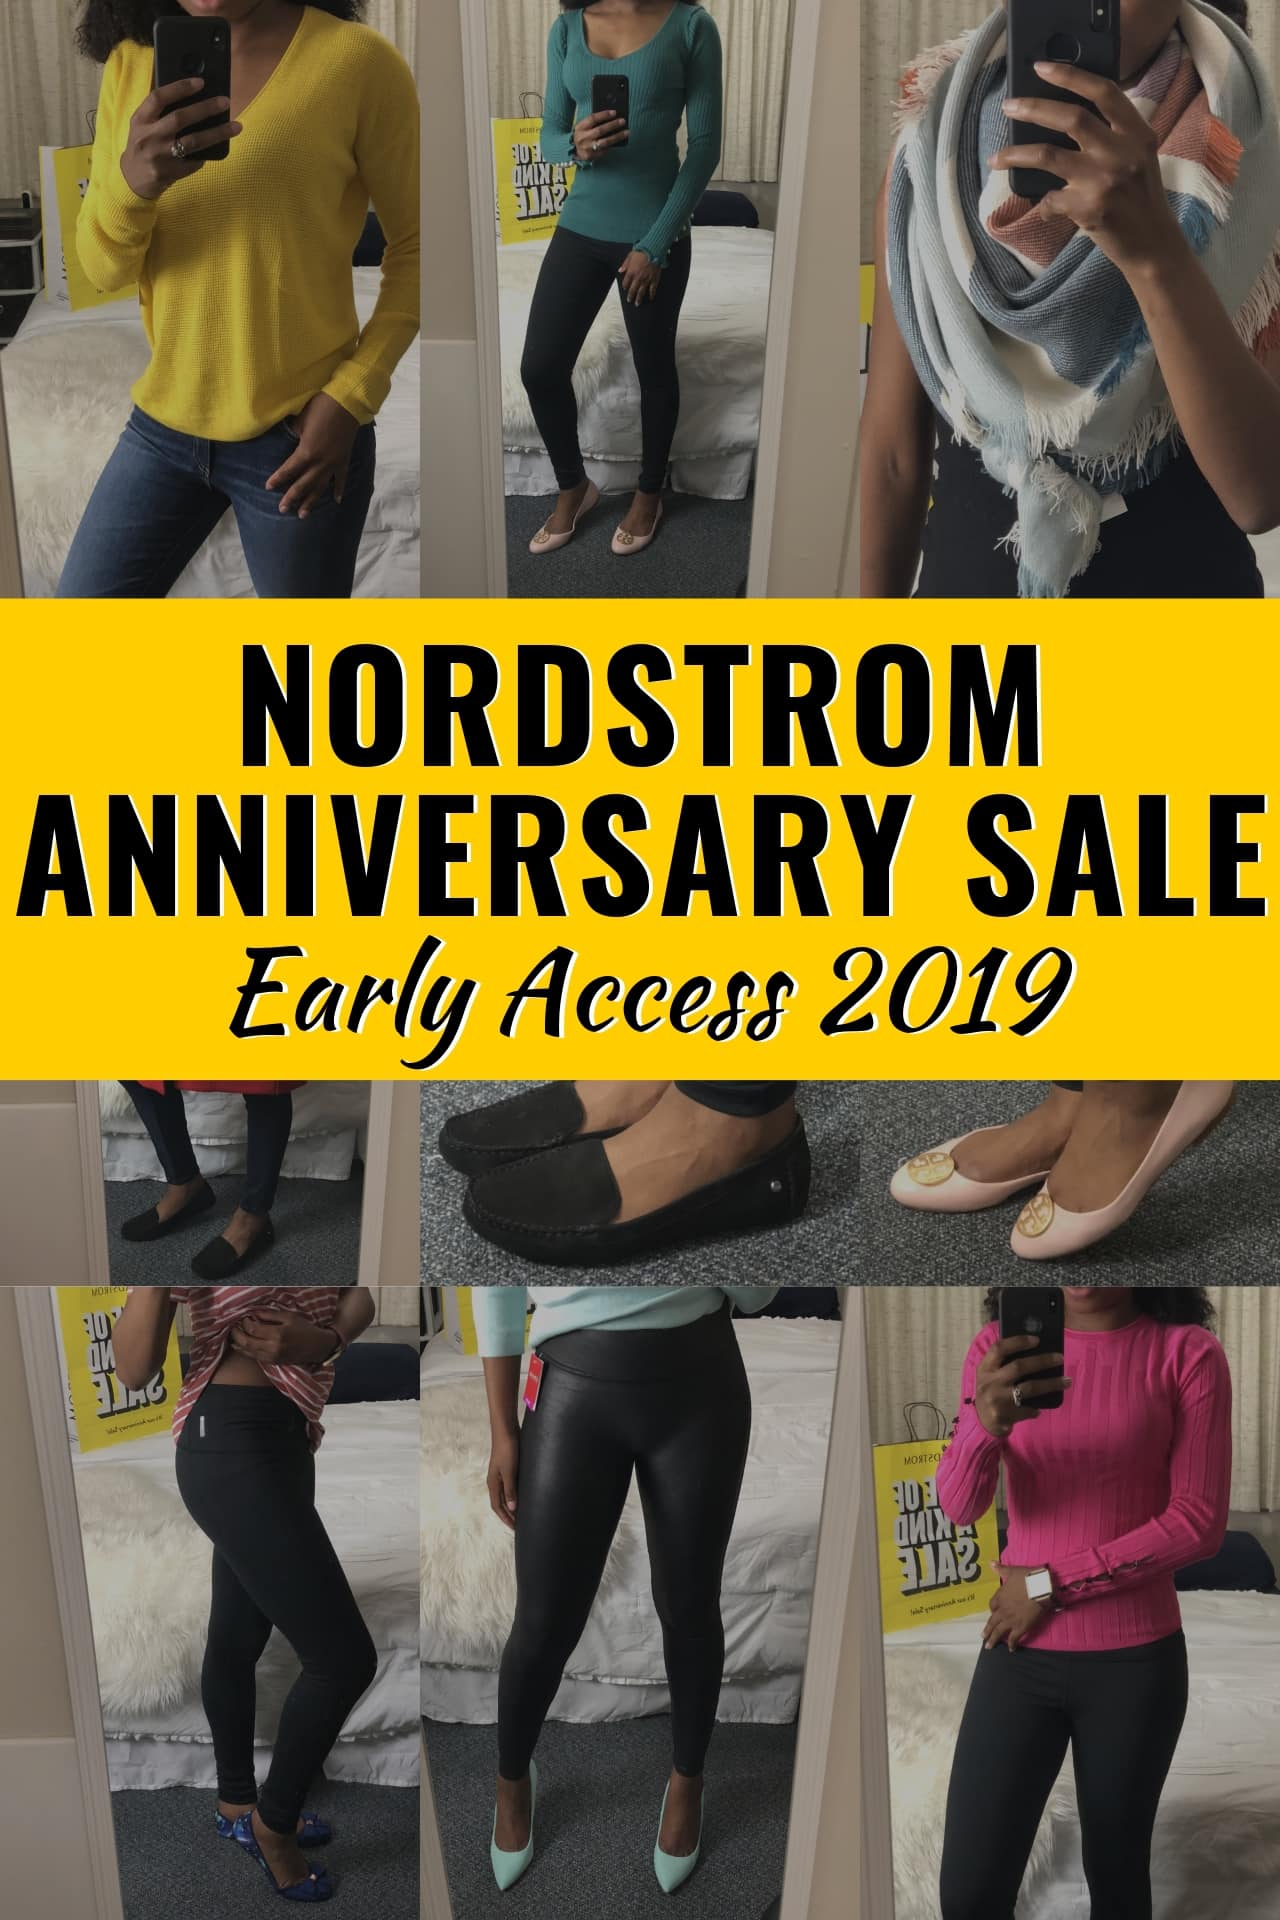 Nordstrom Anniversary Sale 2019 Early Access | Bestsellers and Must-Haves